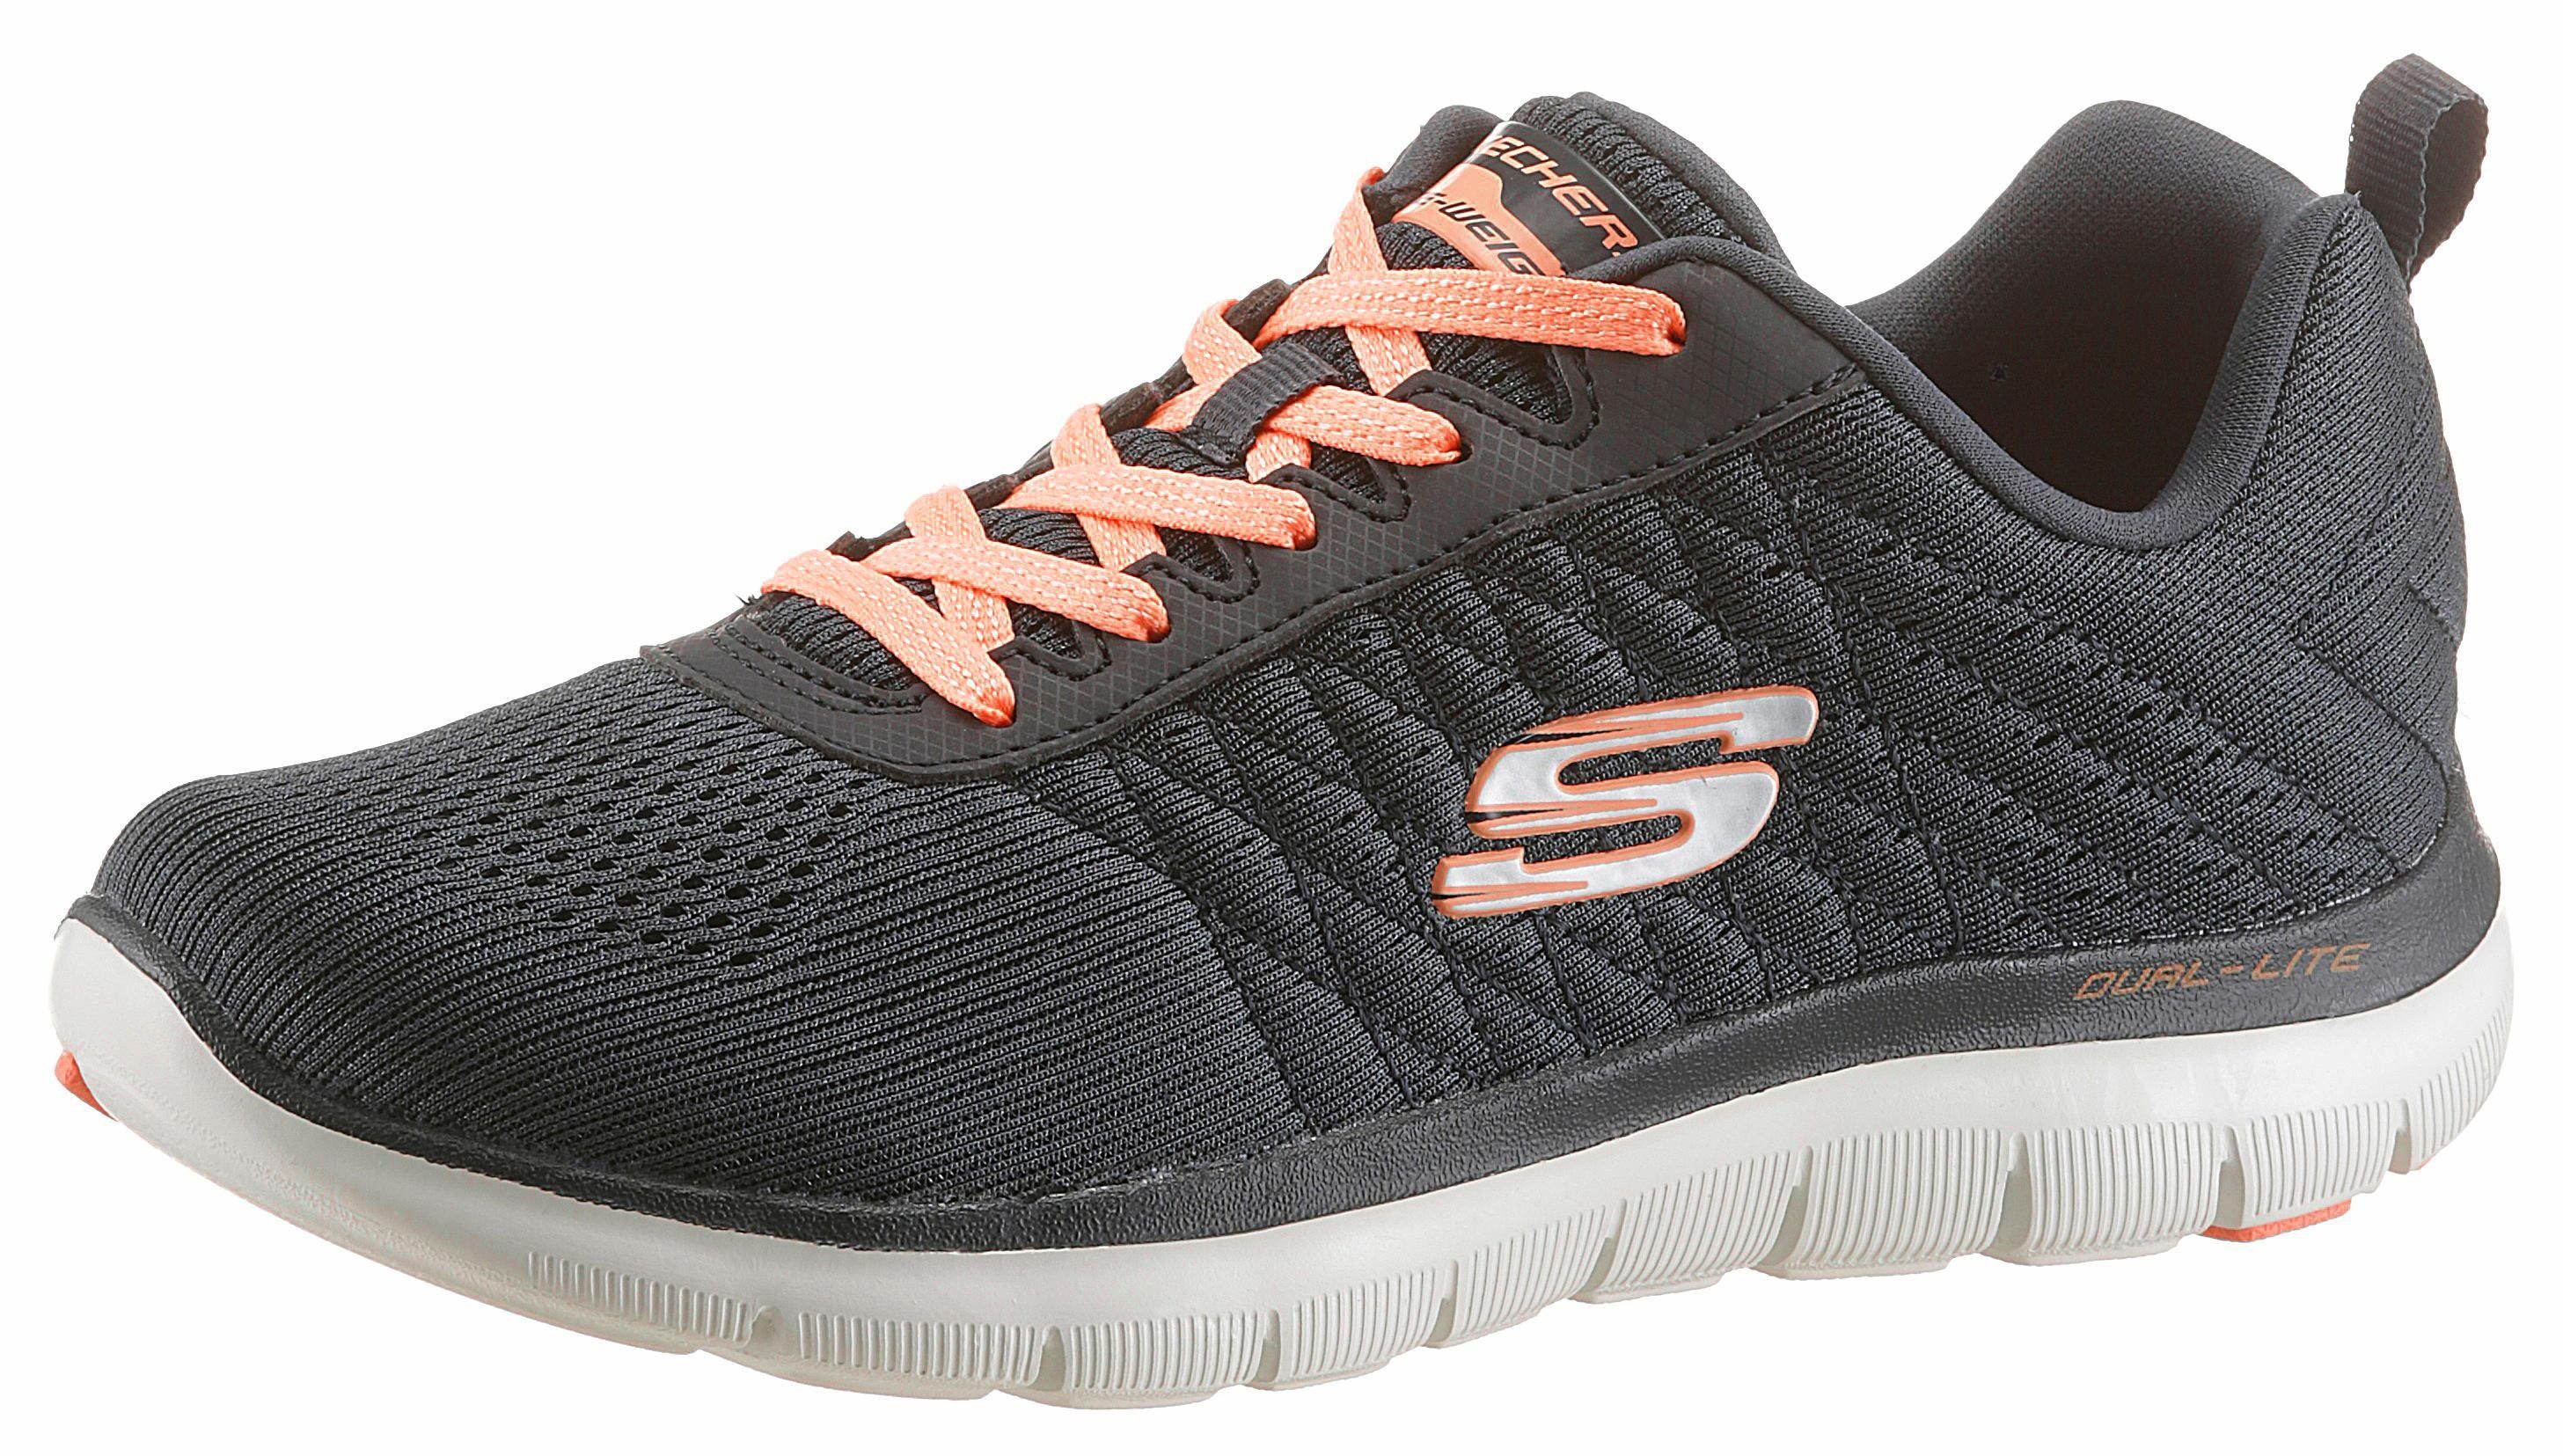 Skechers »Graceful - Get Connected« Sneaker, mit Dämpfung durch Memory Foam, blau, 35 35